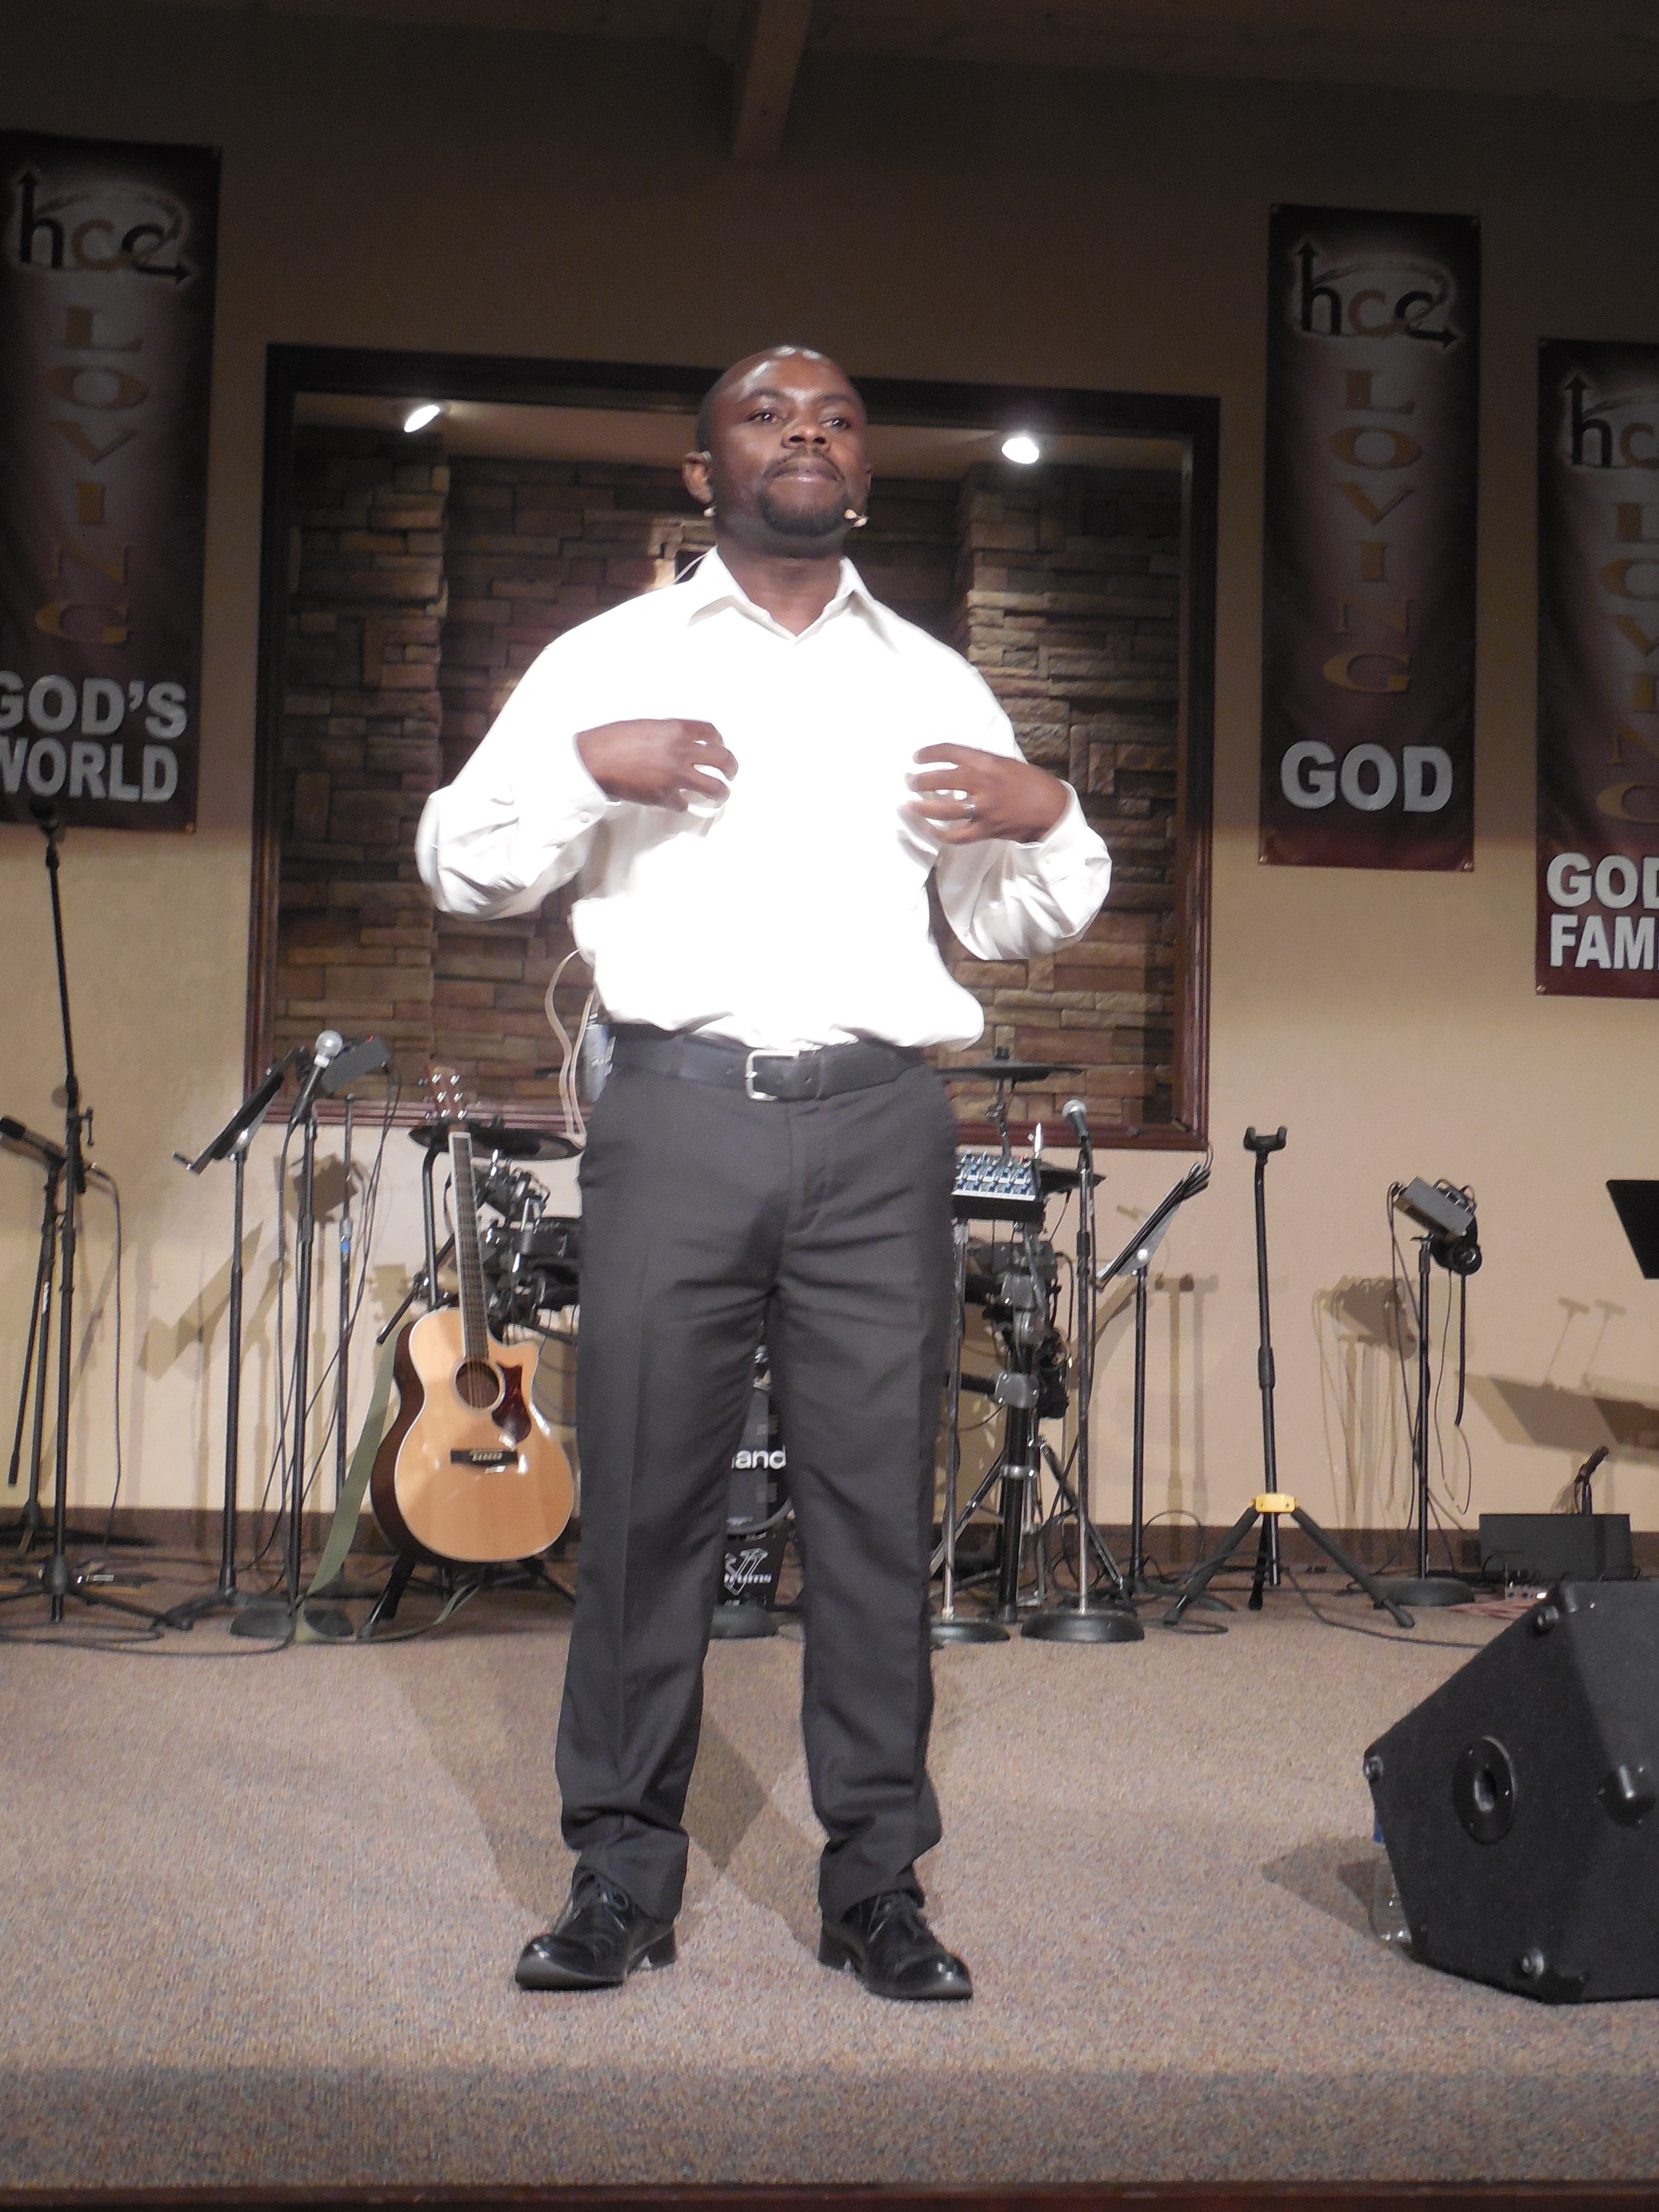 During a trip to Peoria, Arizona in May 2015 Mulenga was blessed to preach to the congregation of Horizons Community Church.